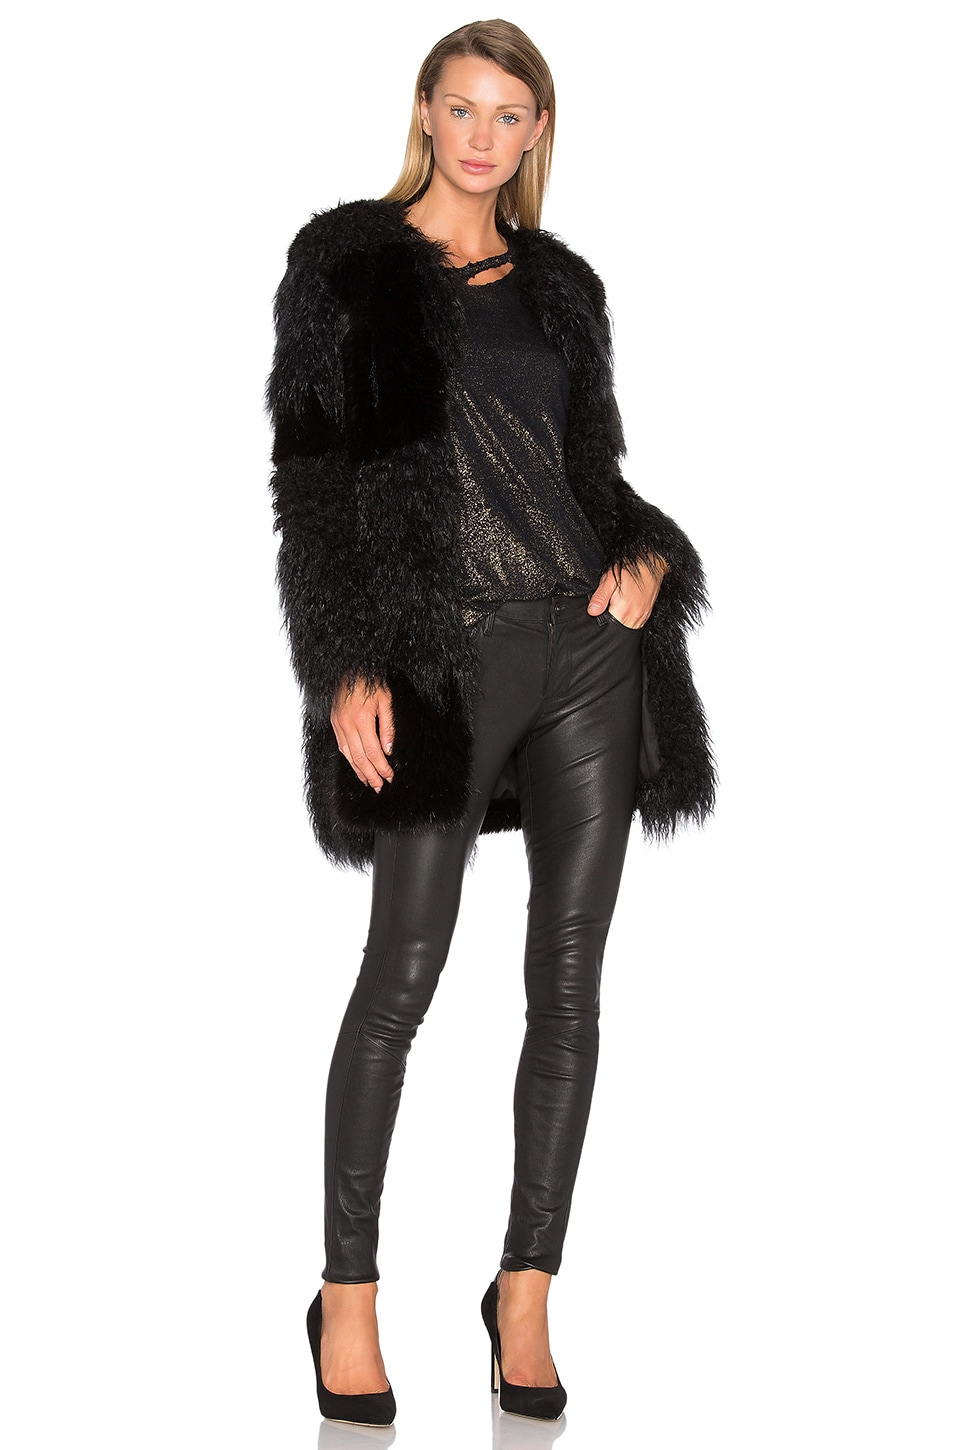 Guinevere Faux Fur Coat by RtA